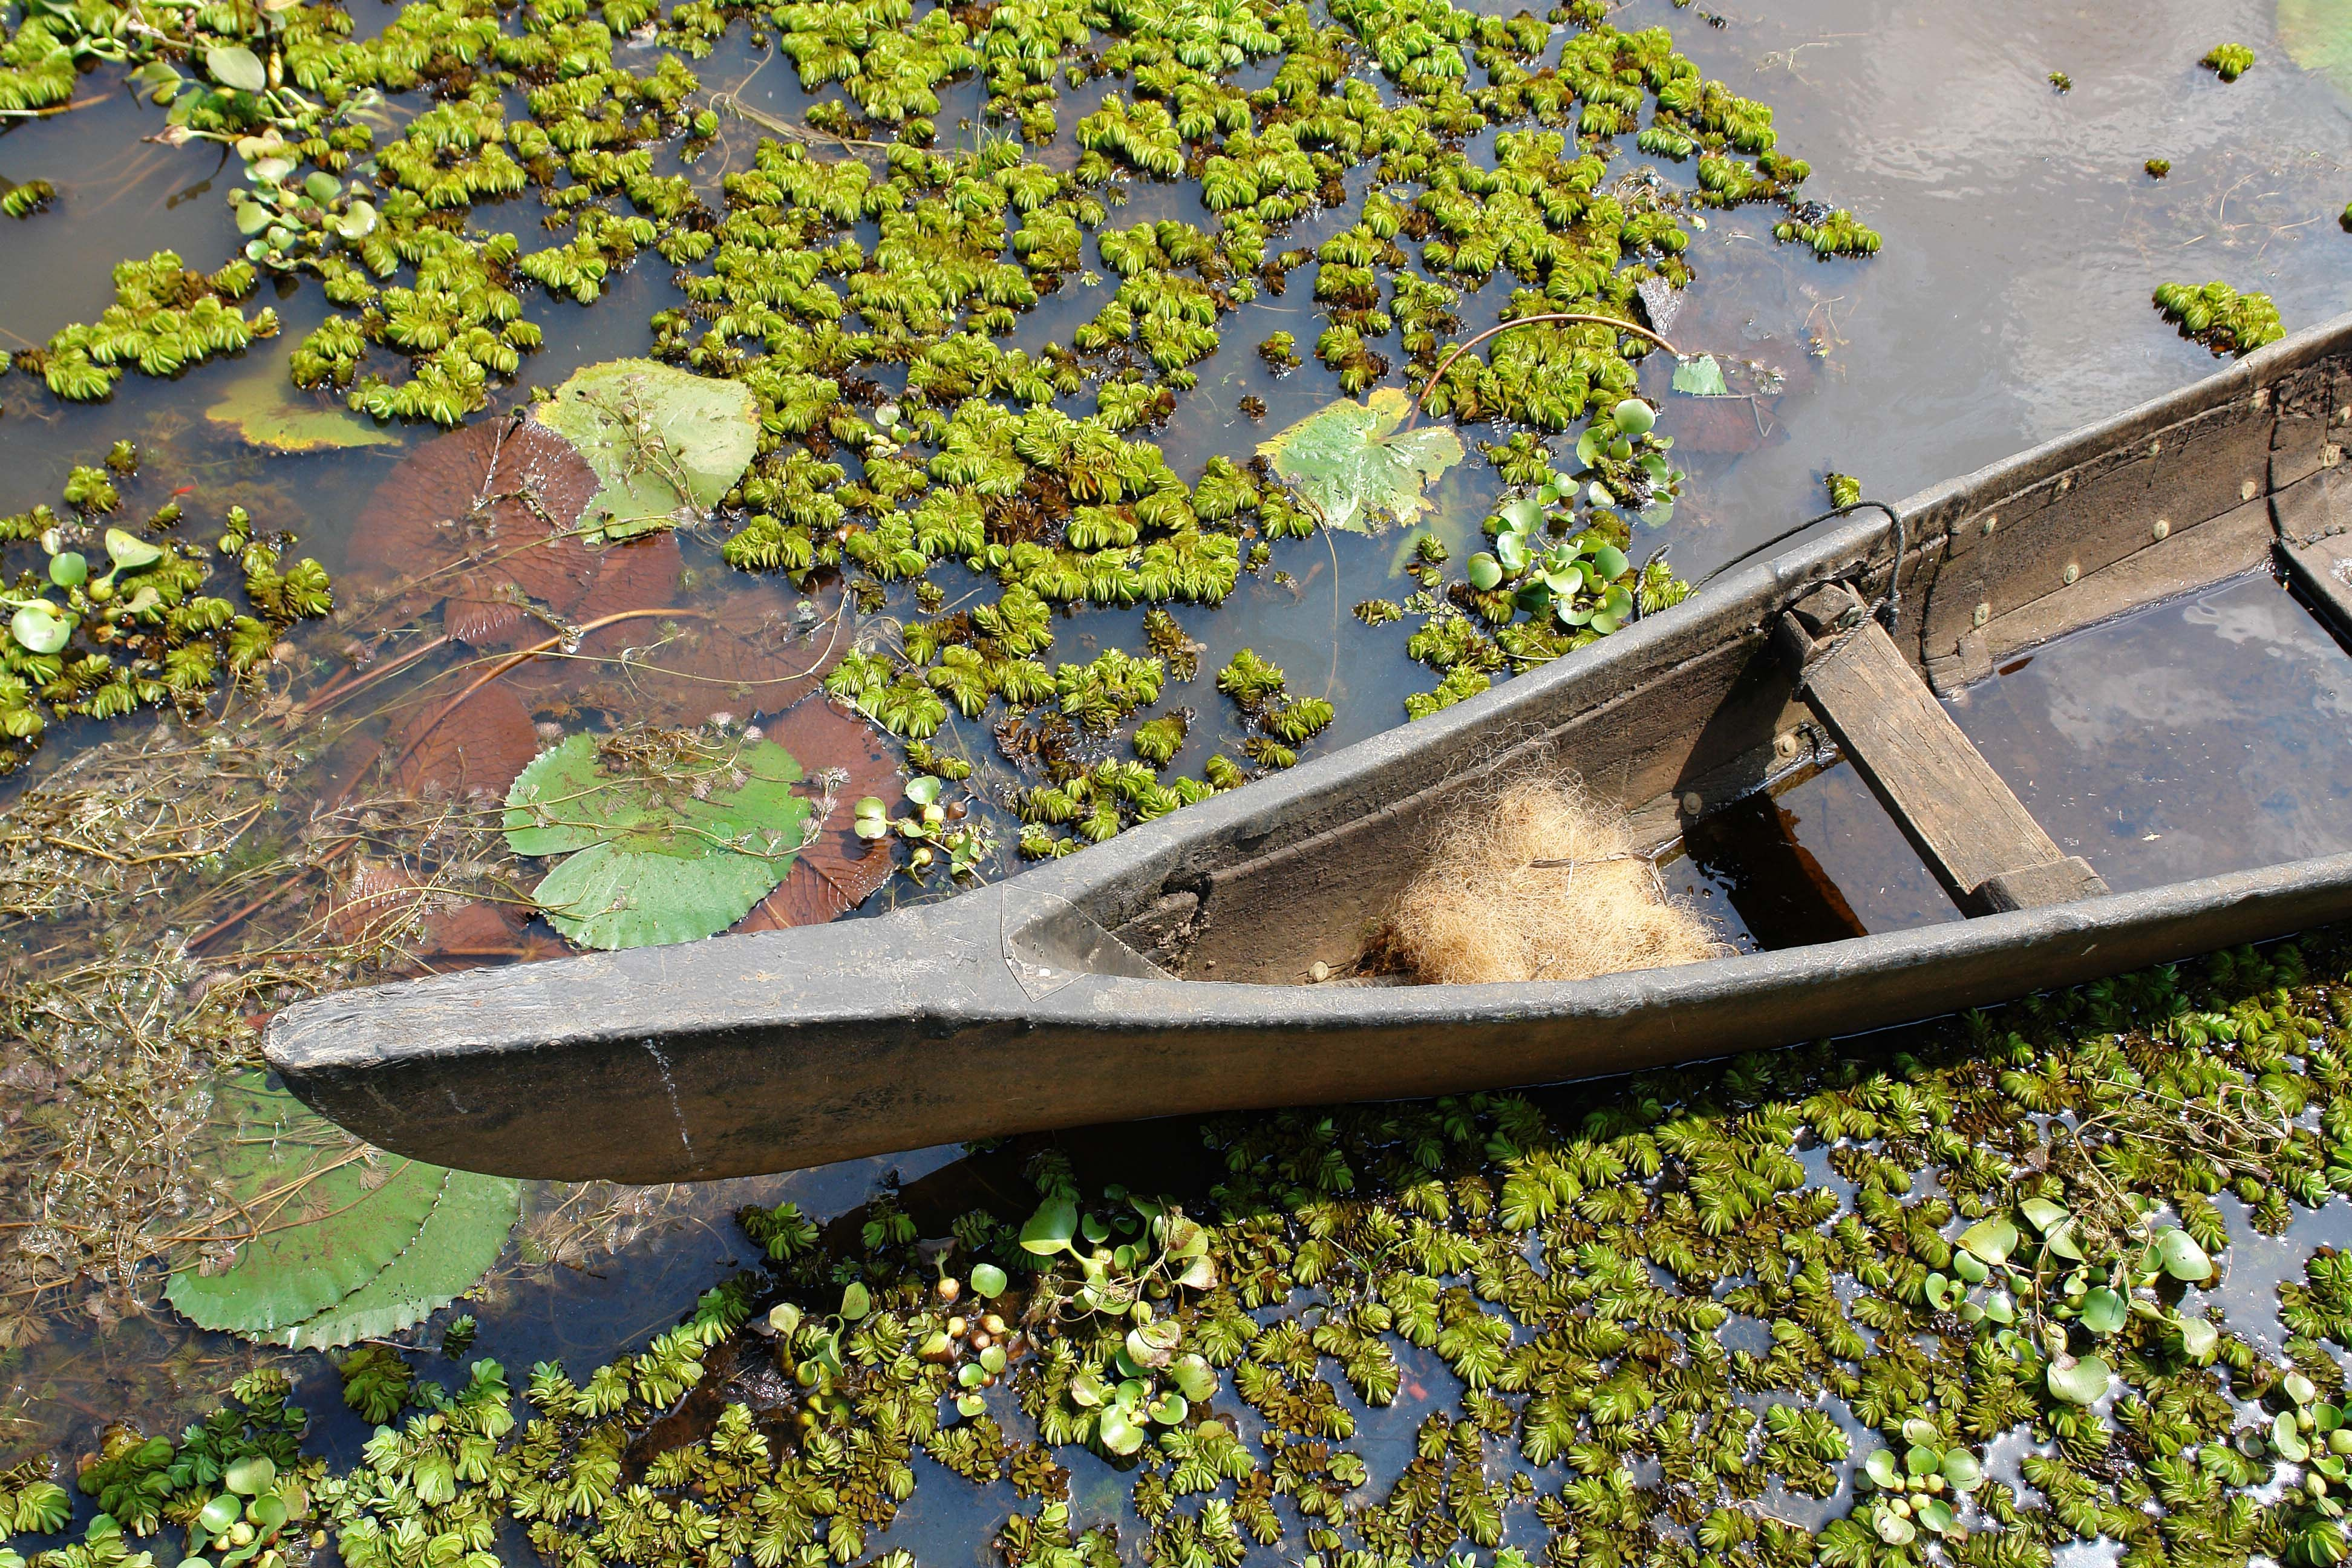 brown canoe on water with waterlilies